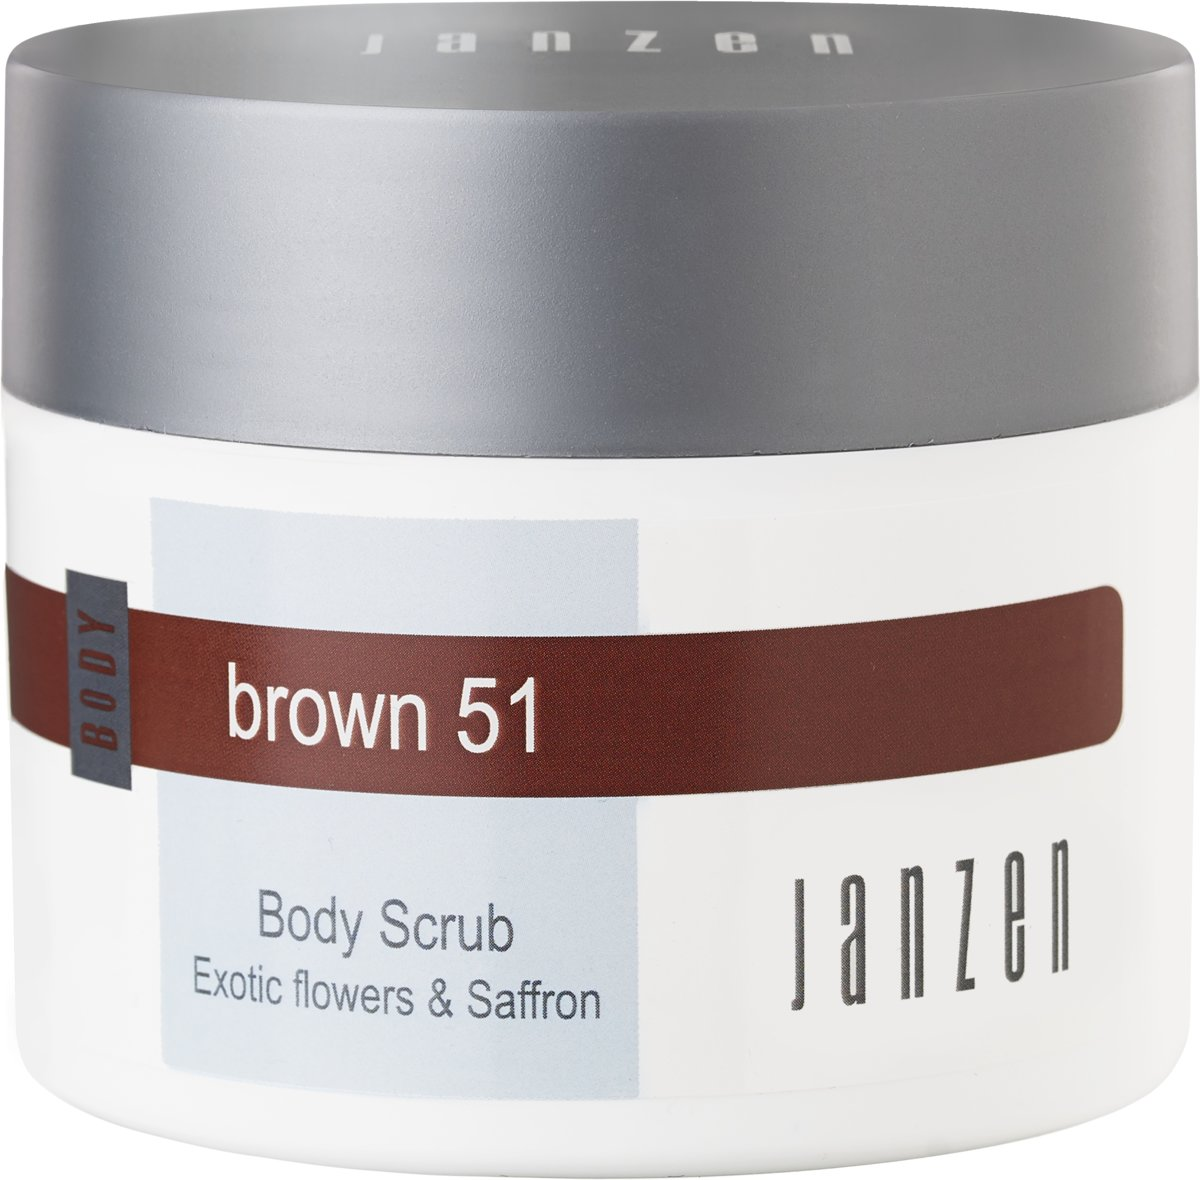 JANZEN Body Scrub Brown 51 - 200 ml